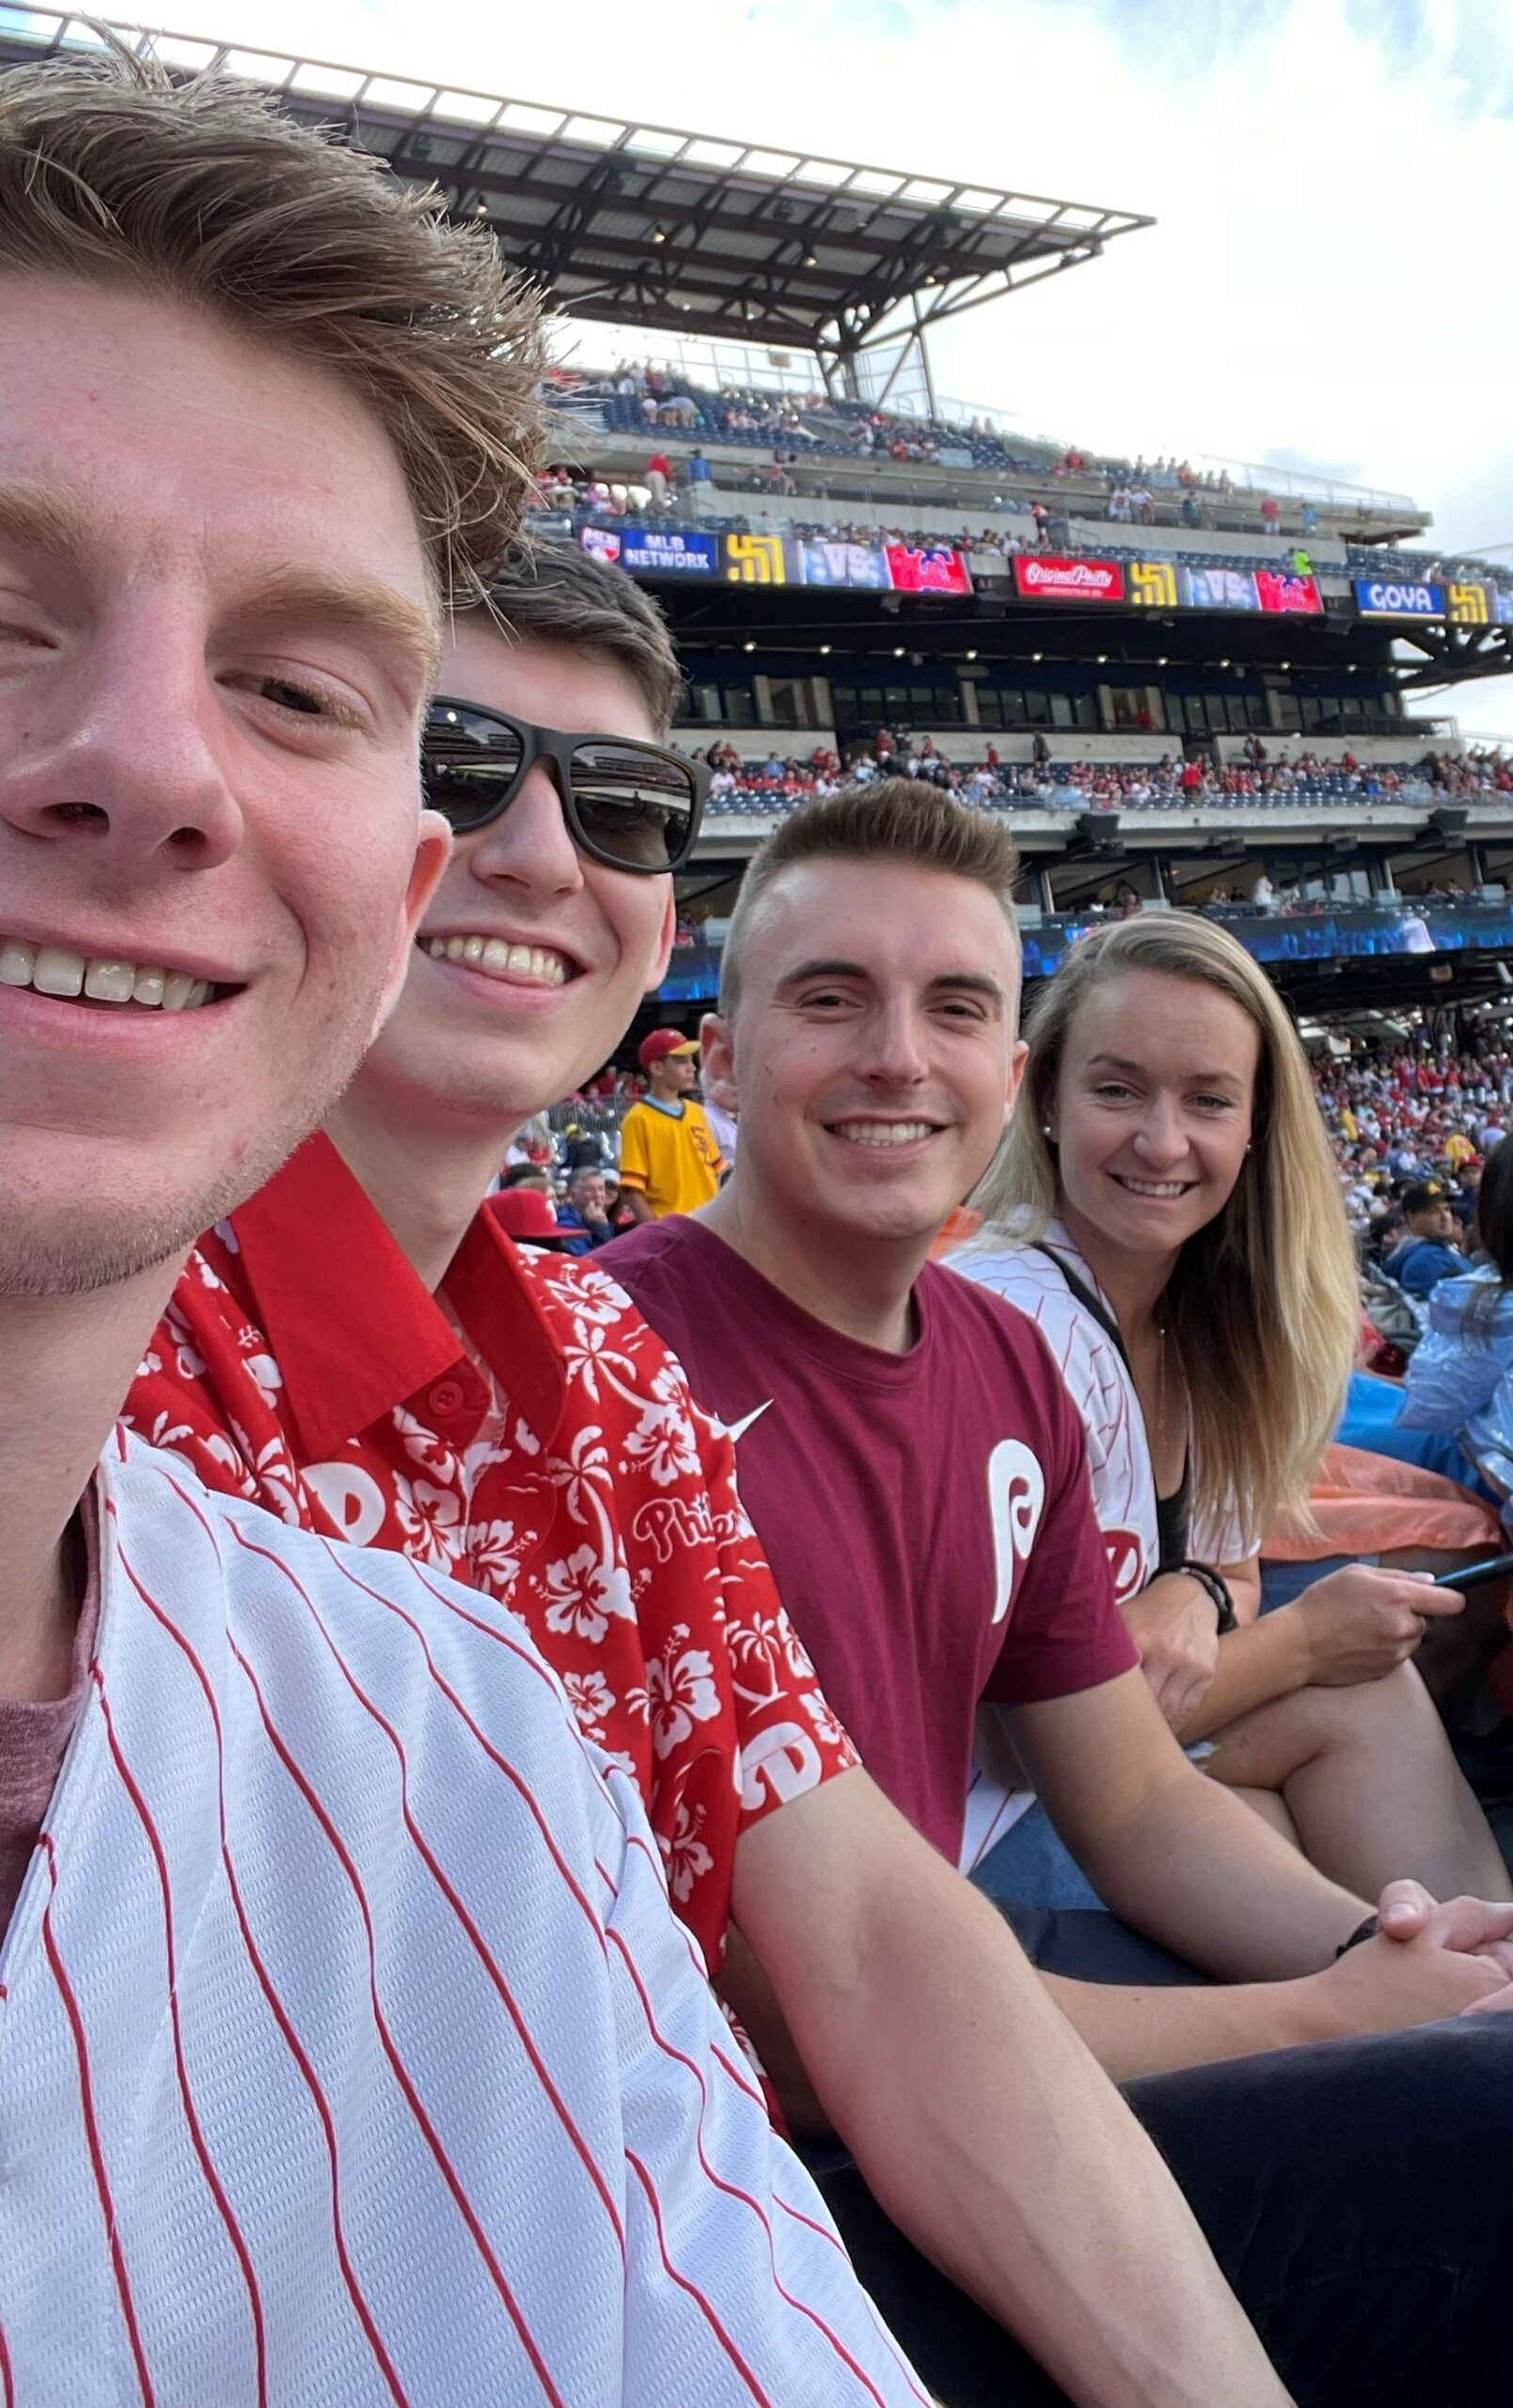 Company-Provided Phillies Tickets on July 3rd